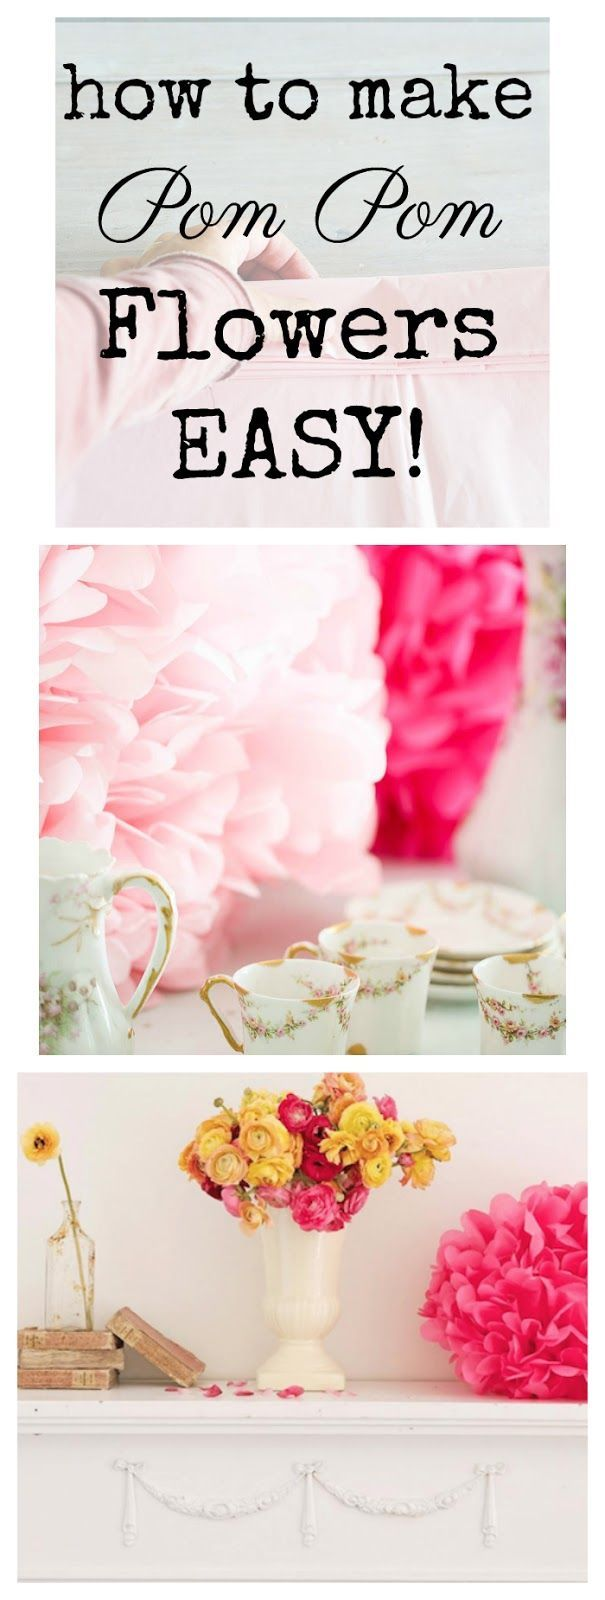 How To Make Tissue Paper Pom Poms - Easy DIY #paper #weddingdecor #valentinesdaydecorating #crafts